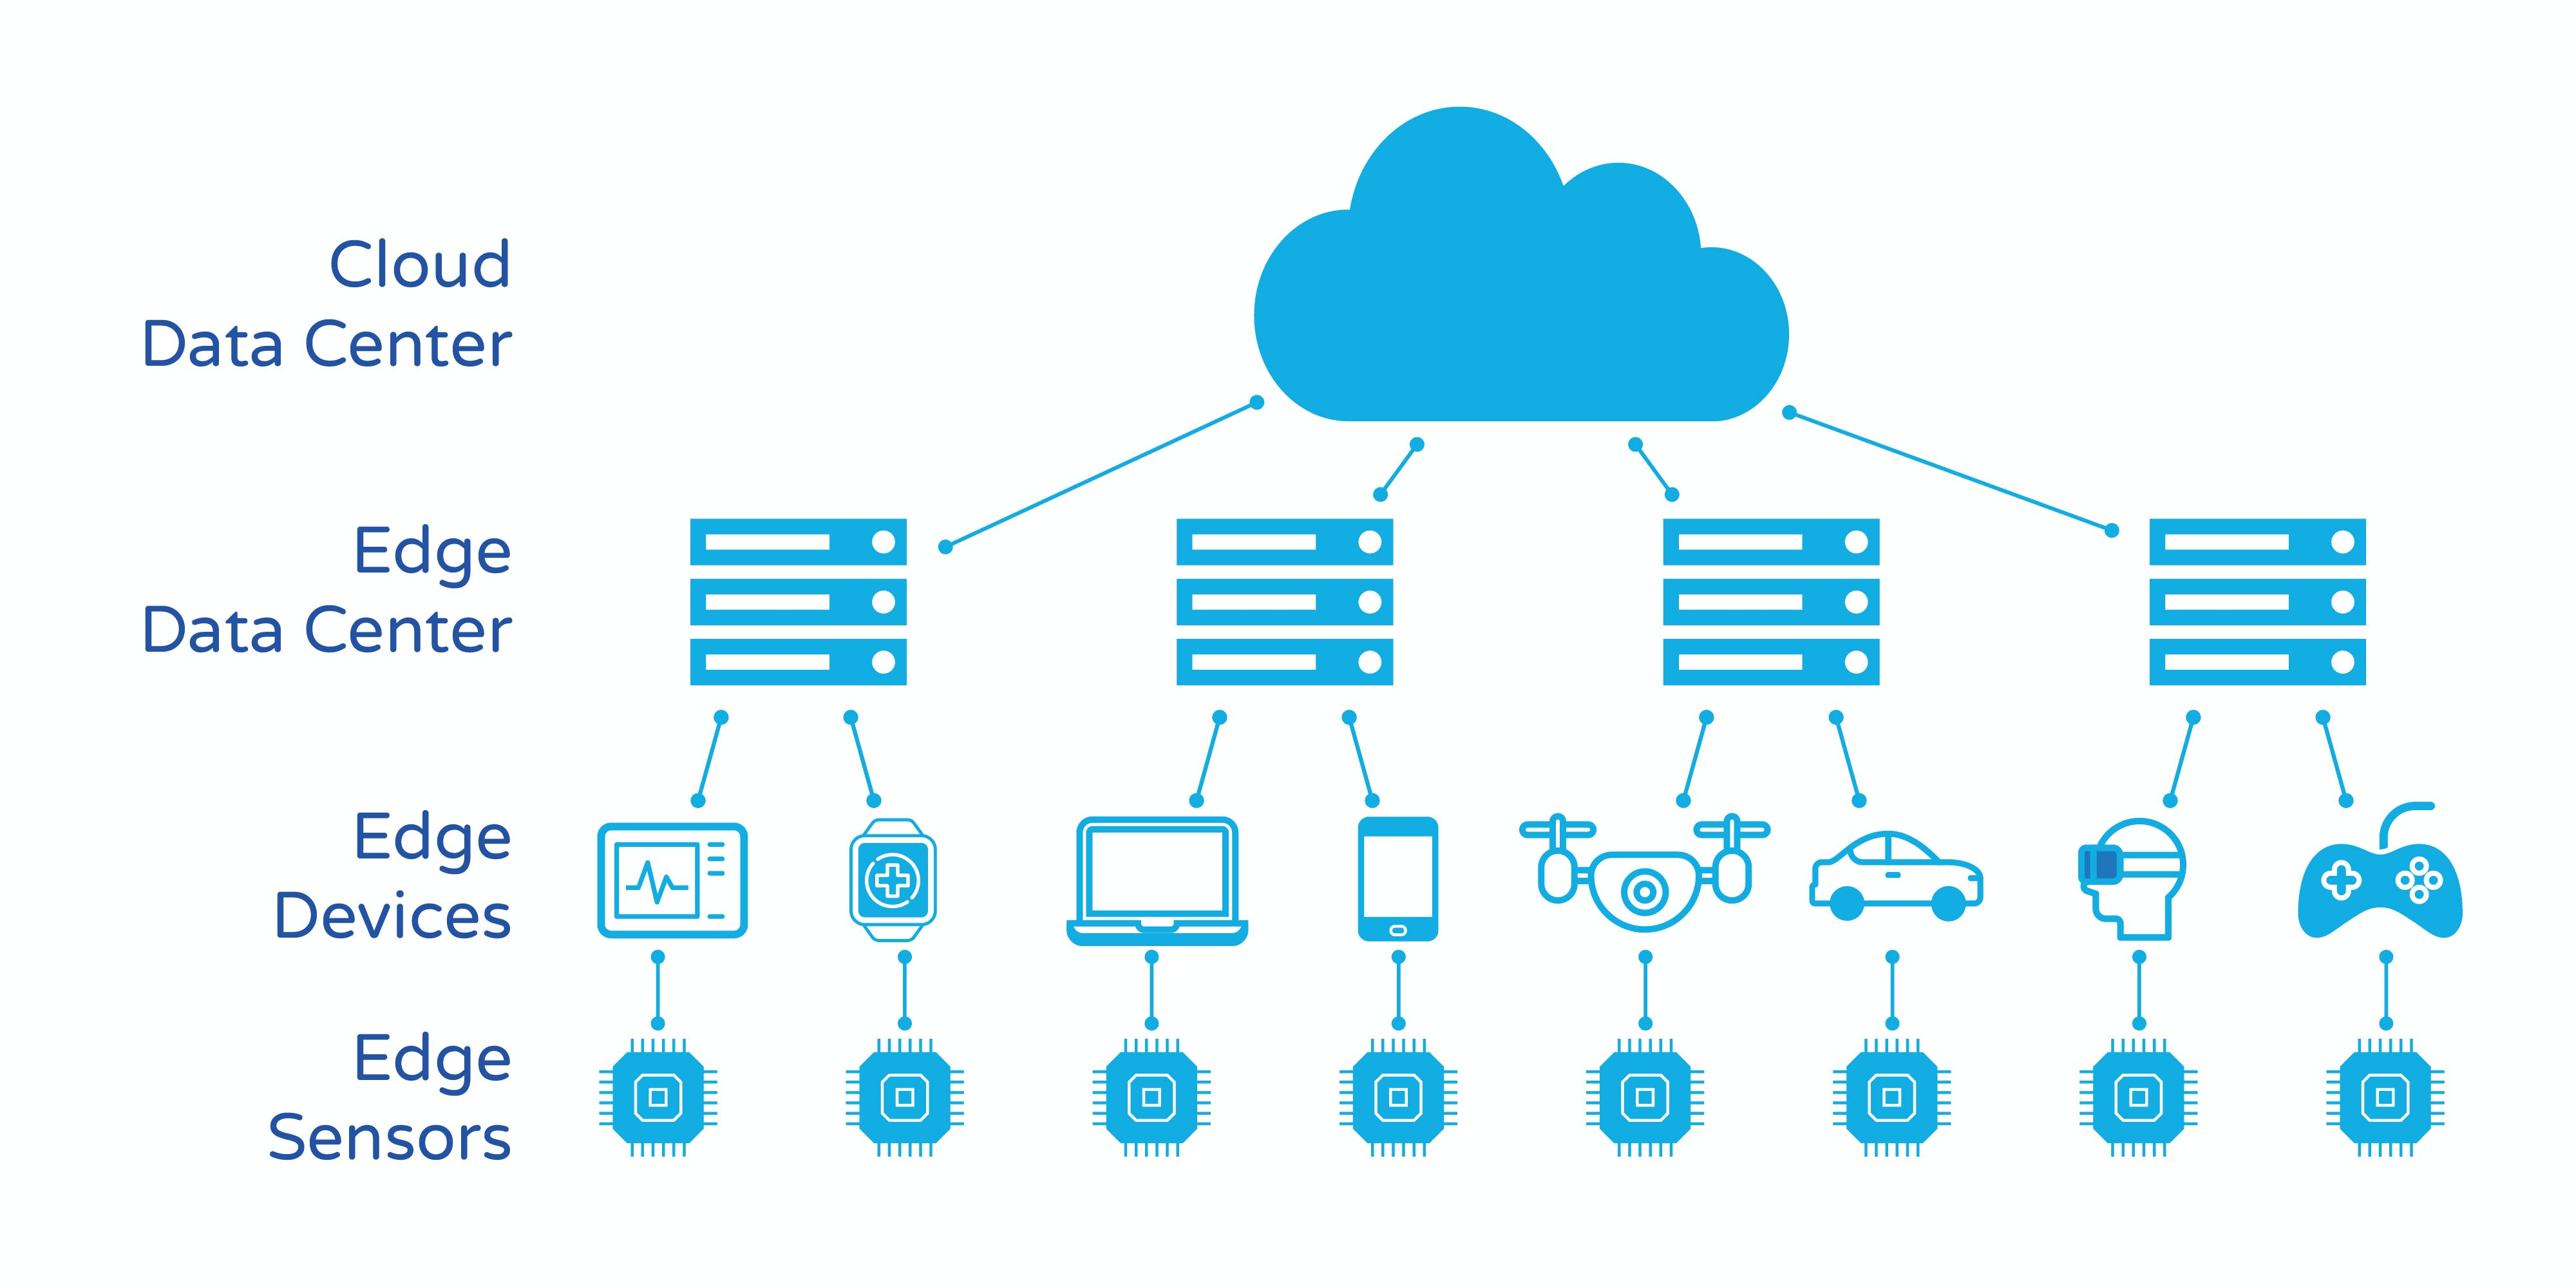 Edge data centers built upon optical networks